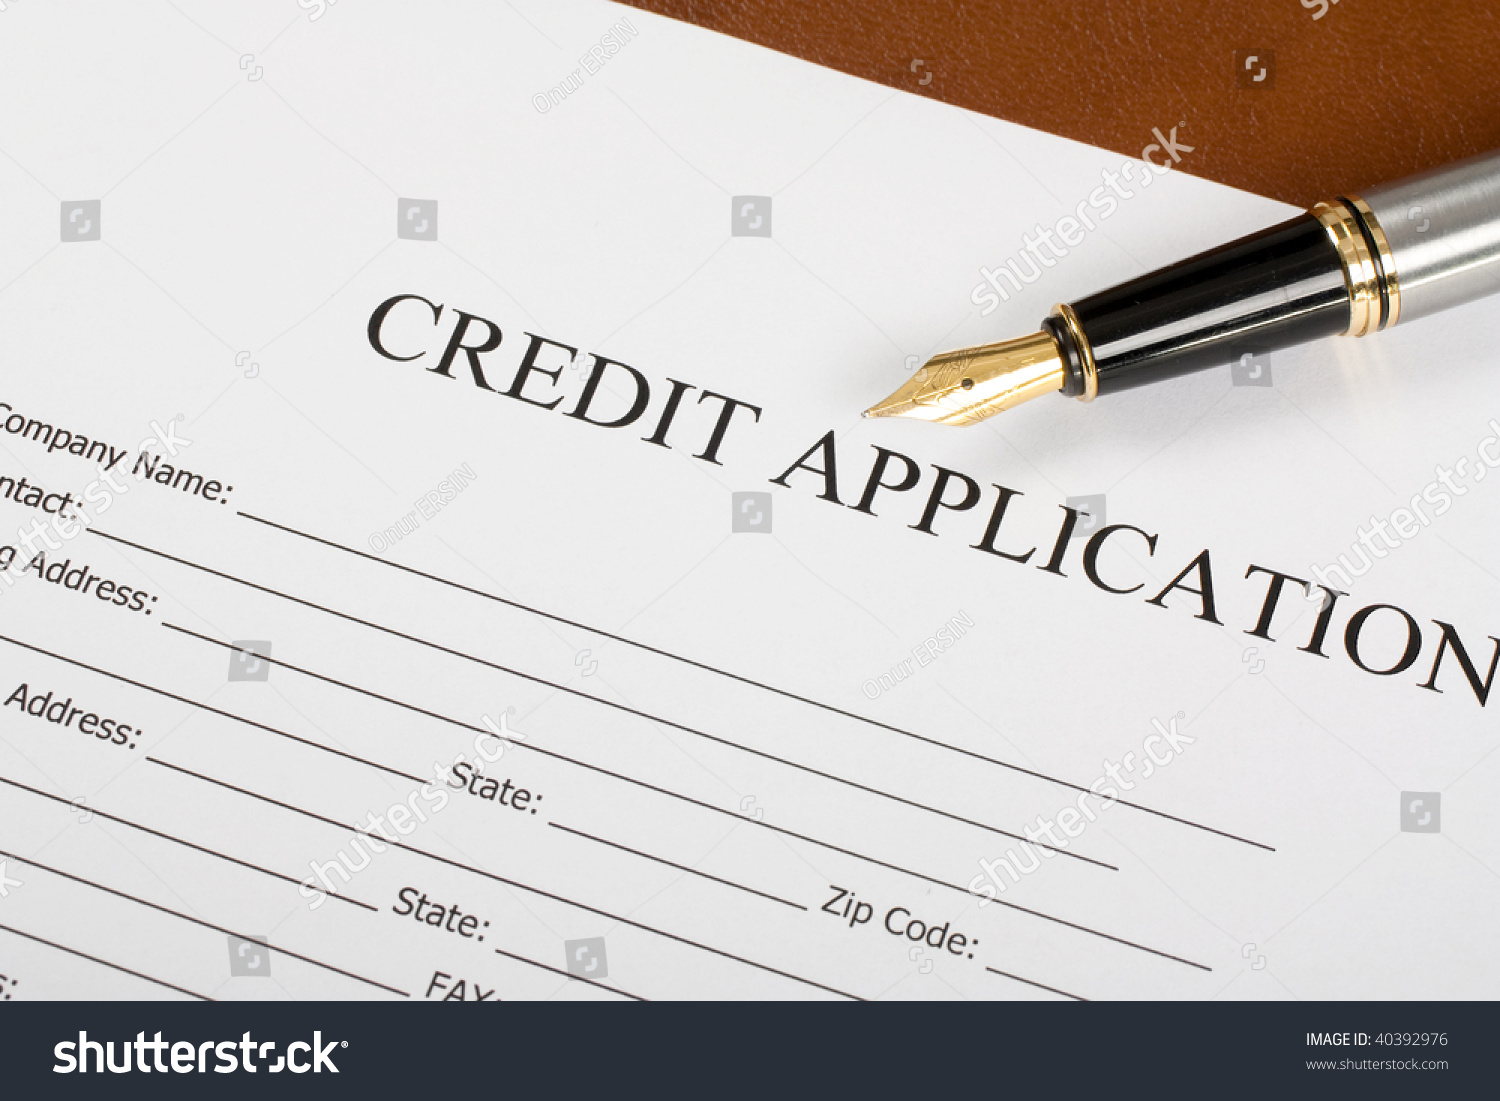 Blank Credit Application Form Pen On Photo 40392976 – Credit Application